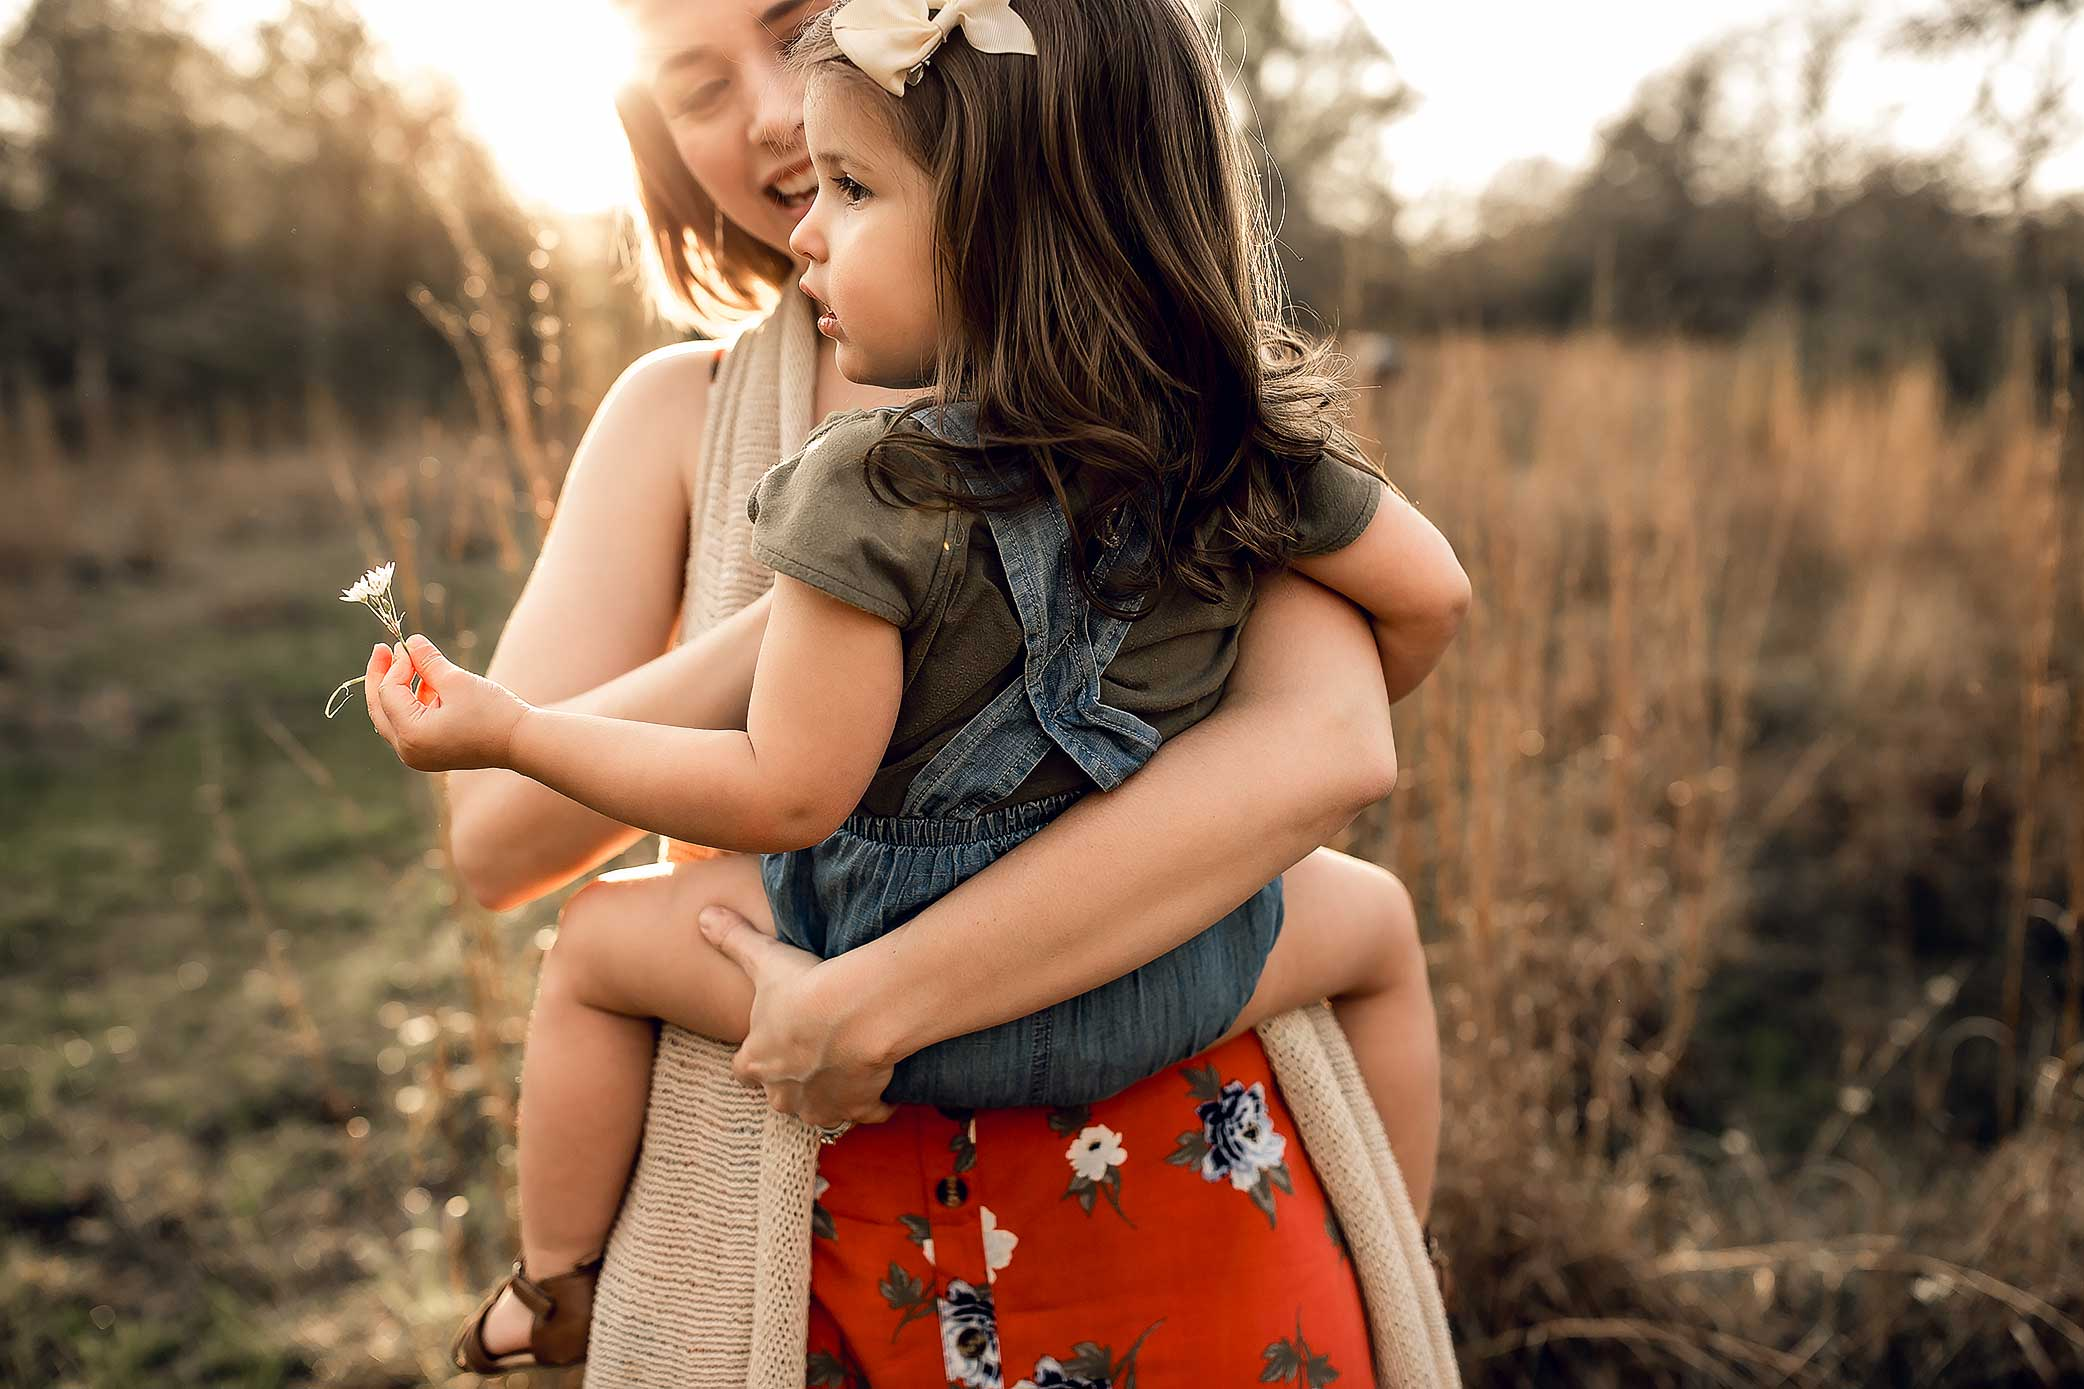 shelby-schiller-photography-sunset-family-pictures-spring-2019-20.jpg